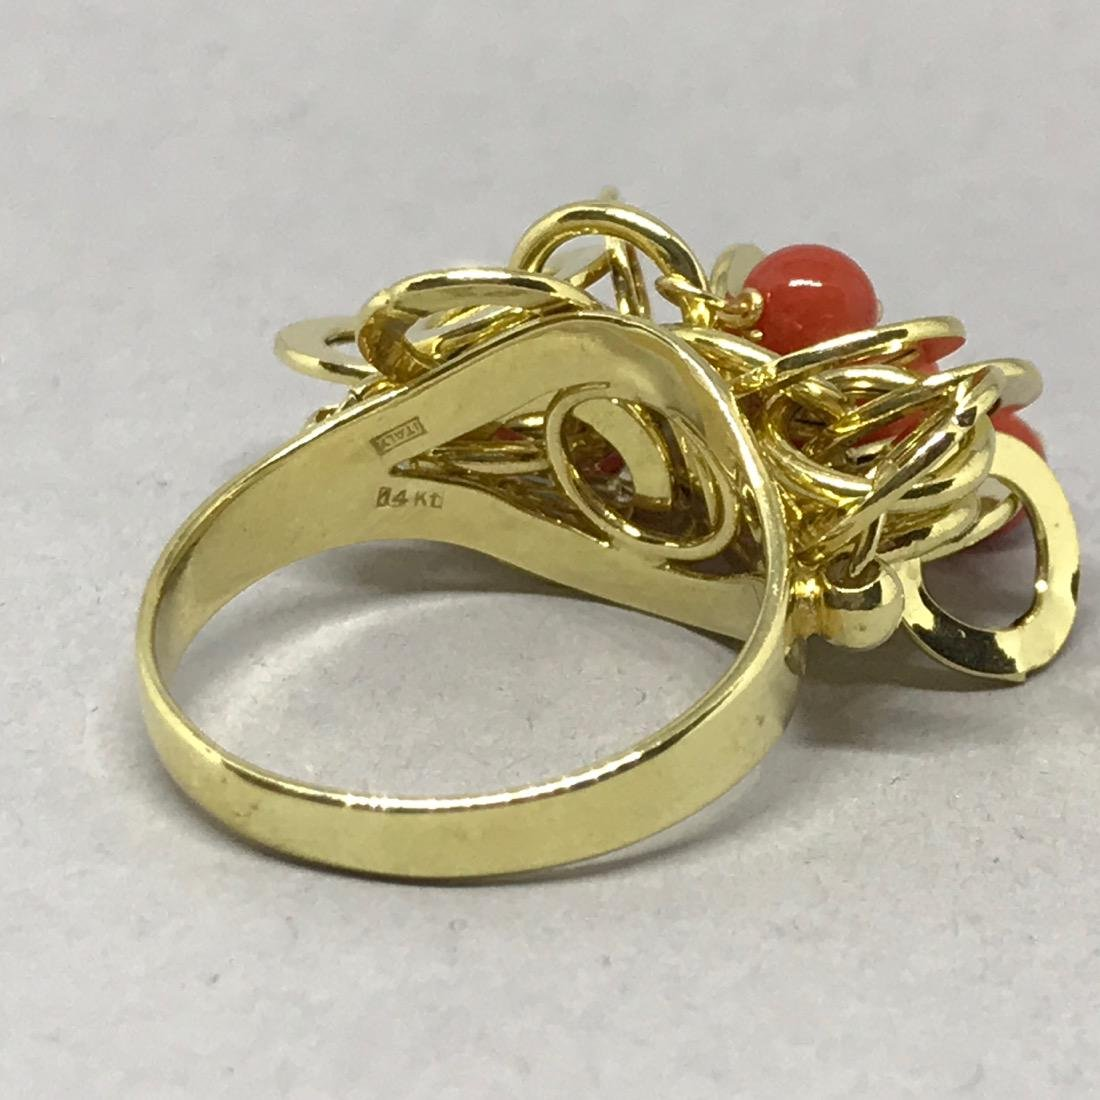 14 Kt Gold Cocktail Ring with Coral Beads. - 4